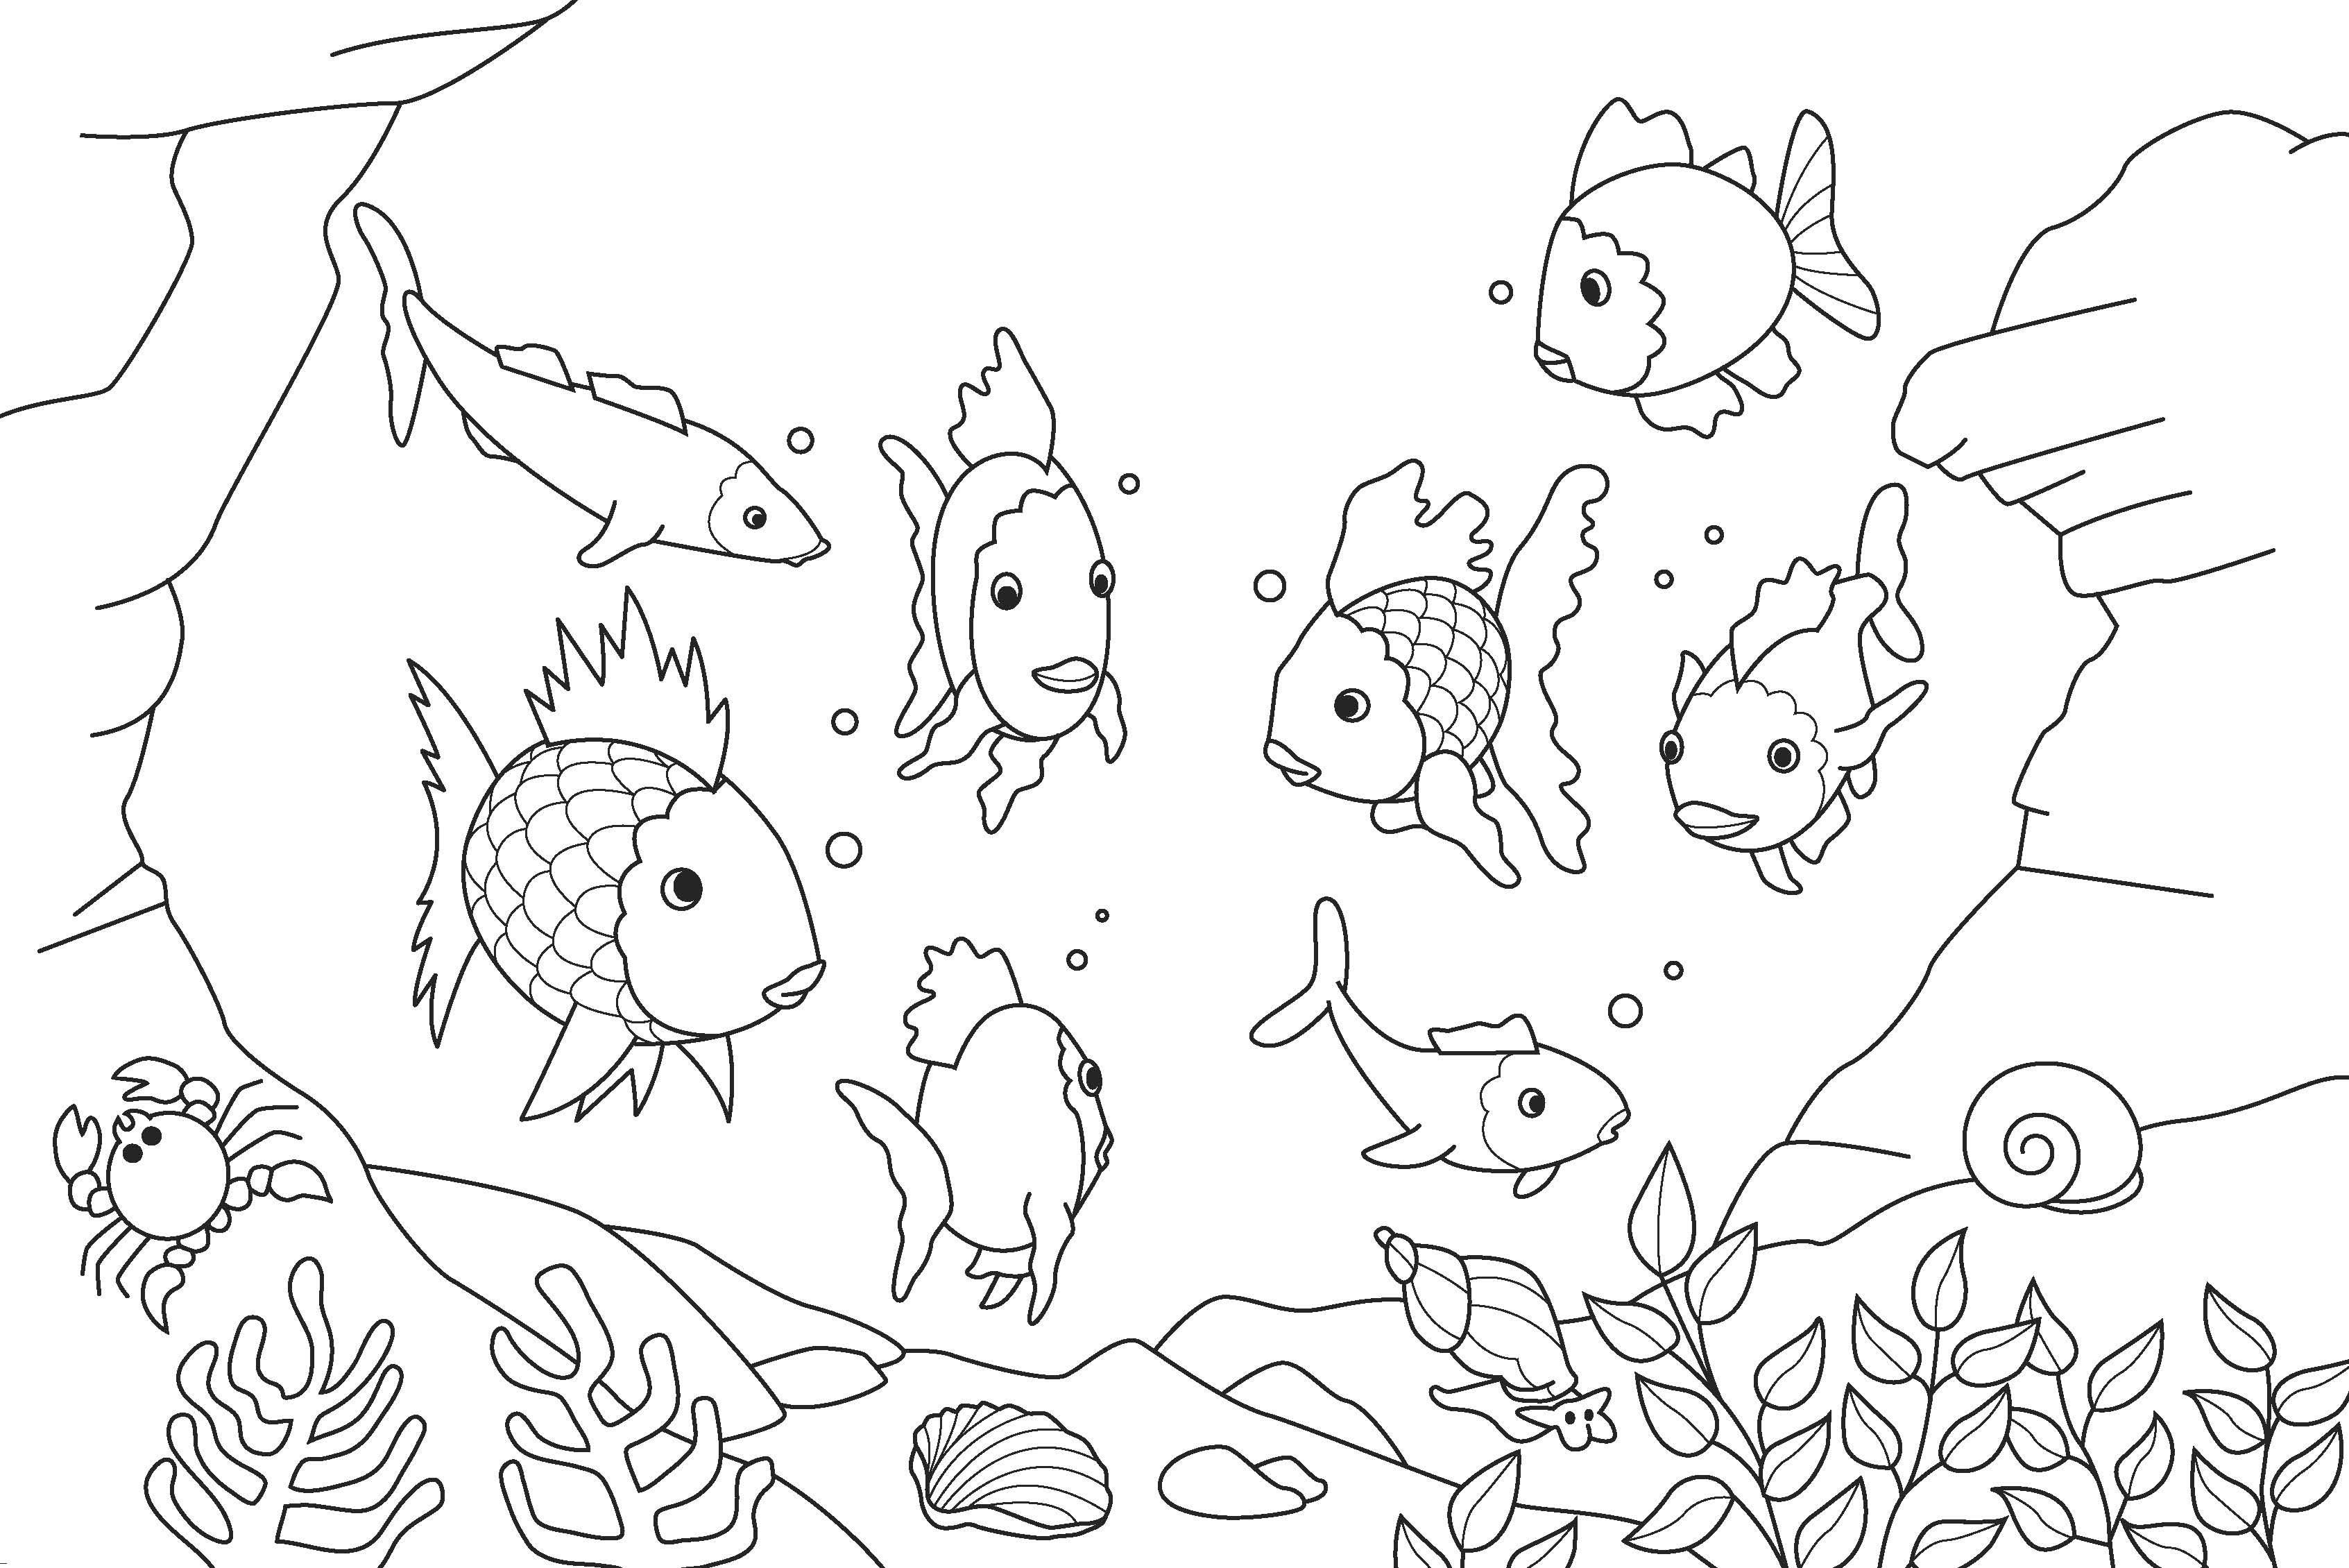 Rainbow coloring pages for preschoolers